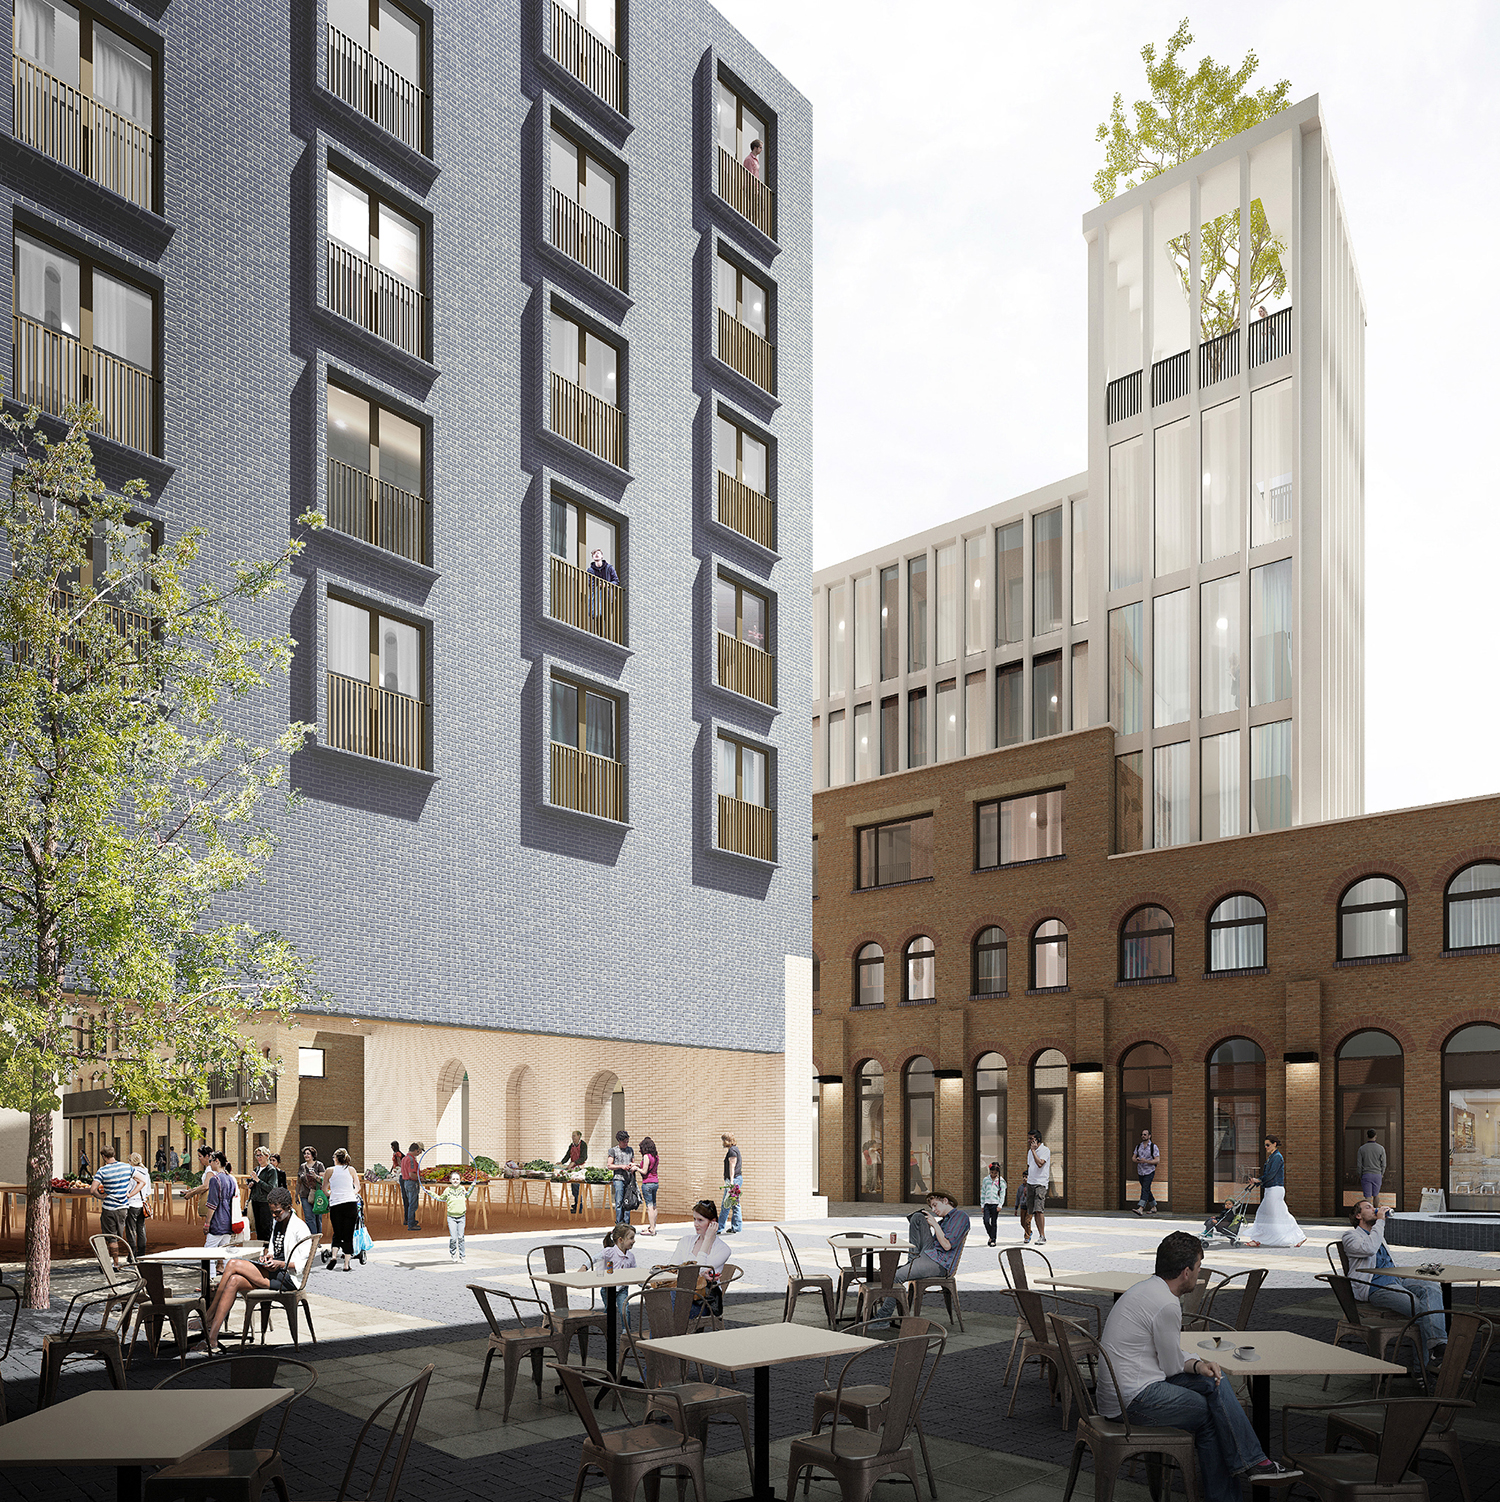 Proposed development at 443 - 449 Holloway Road. Image courtesy of Lynch Architects.